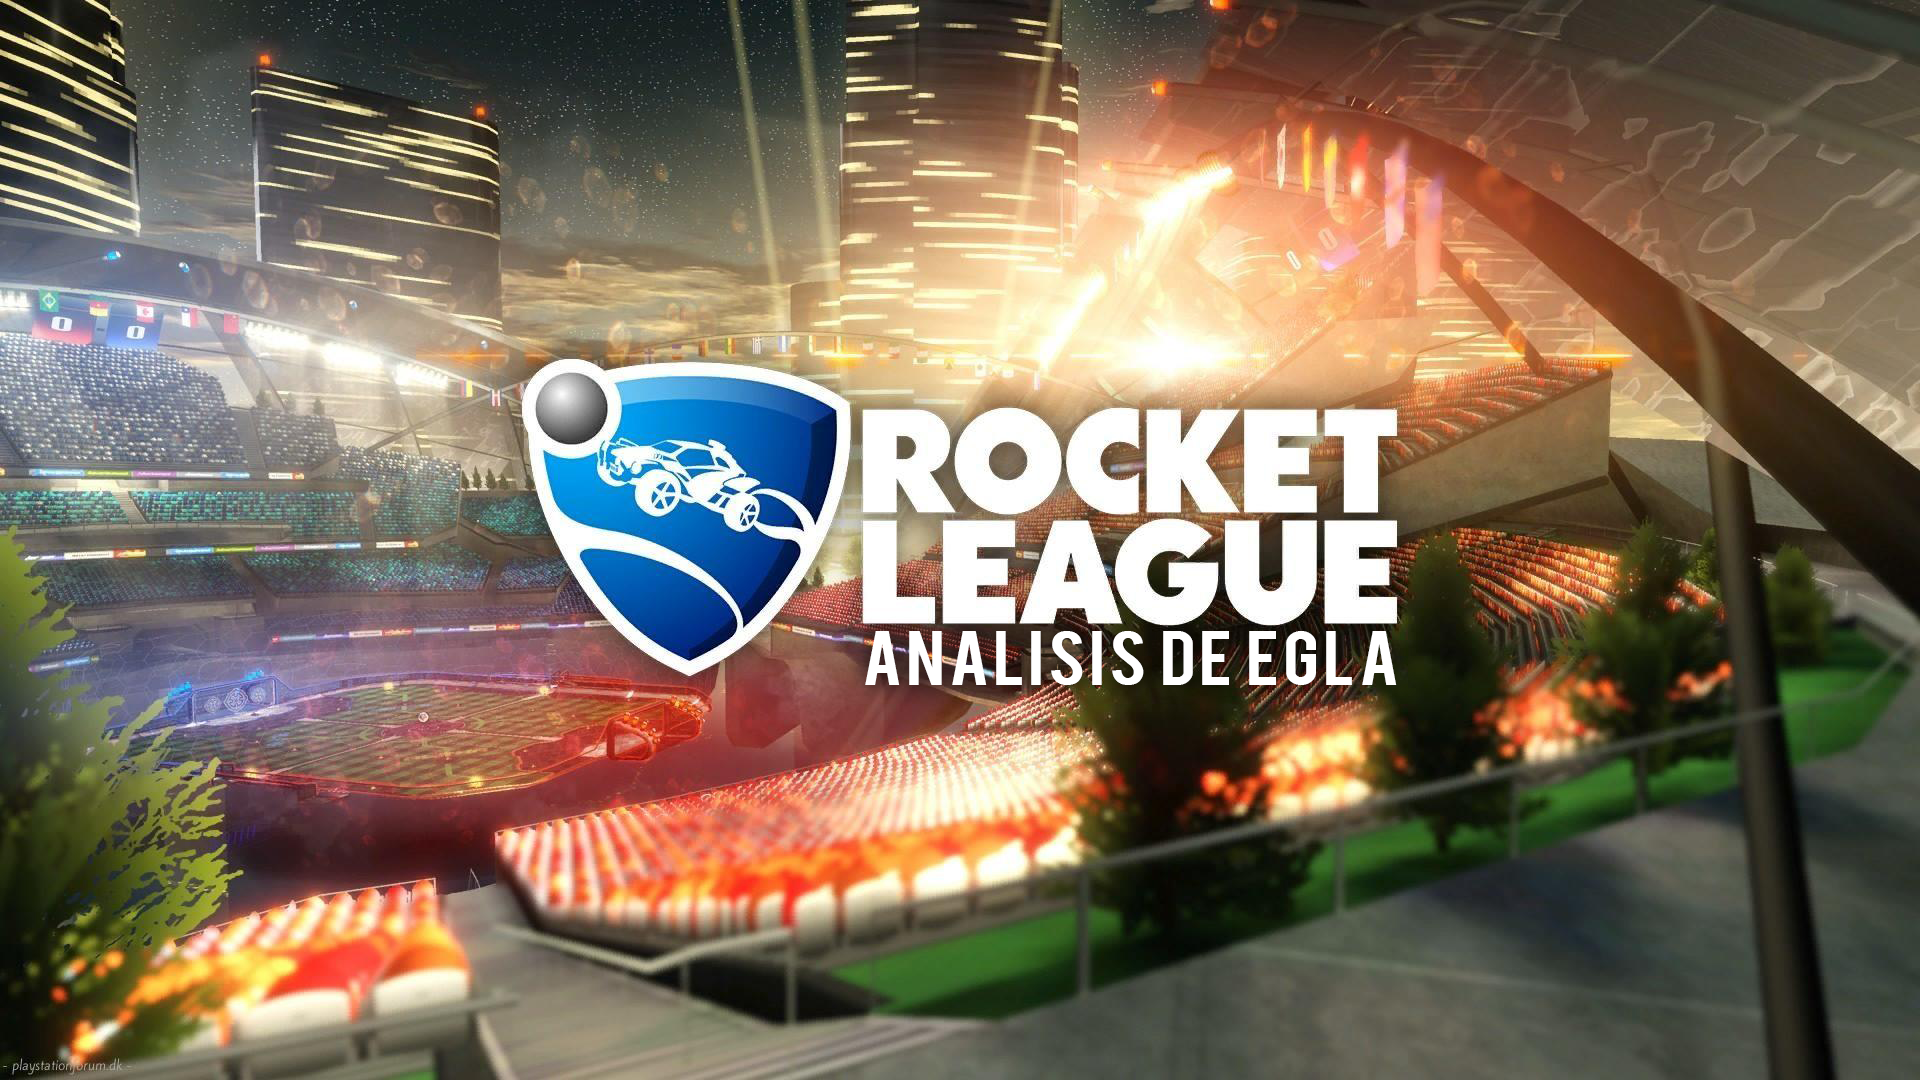 Rocket League EGLA